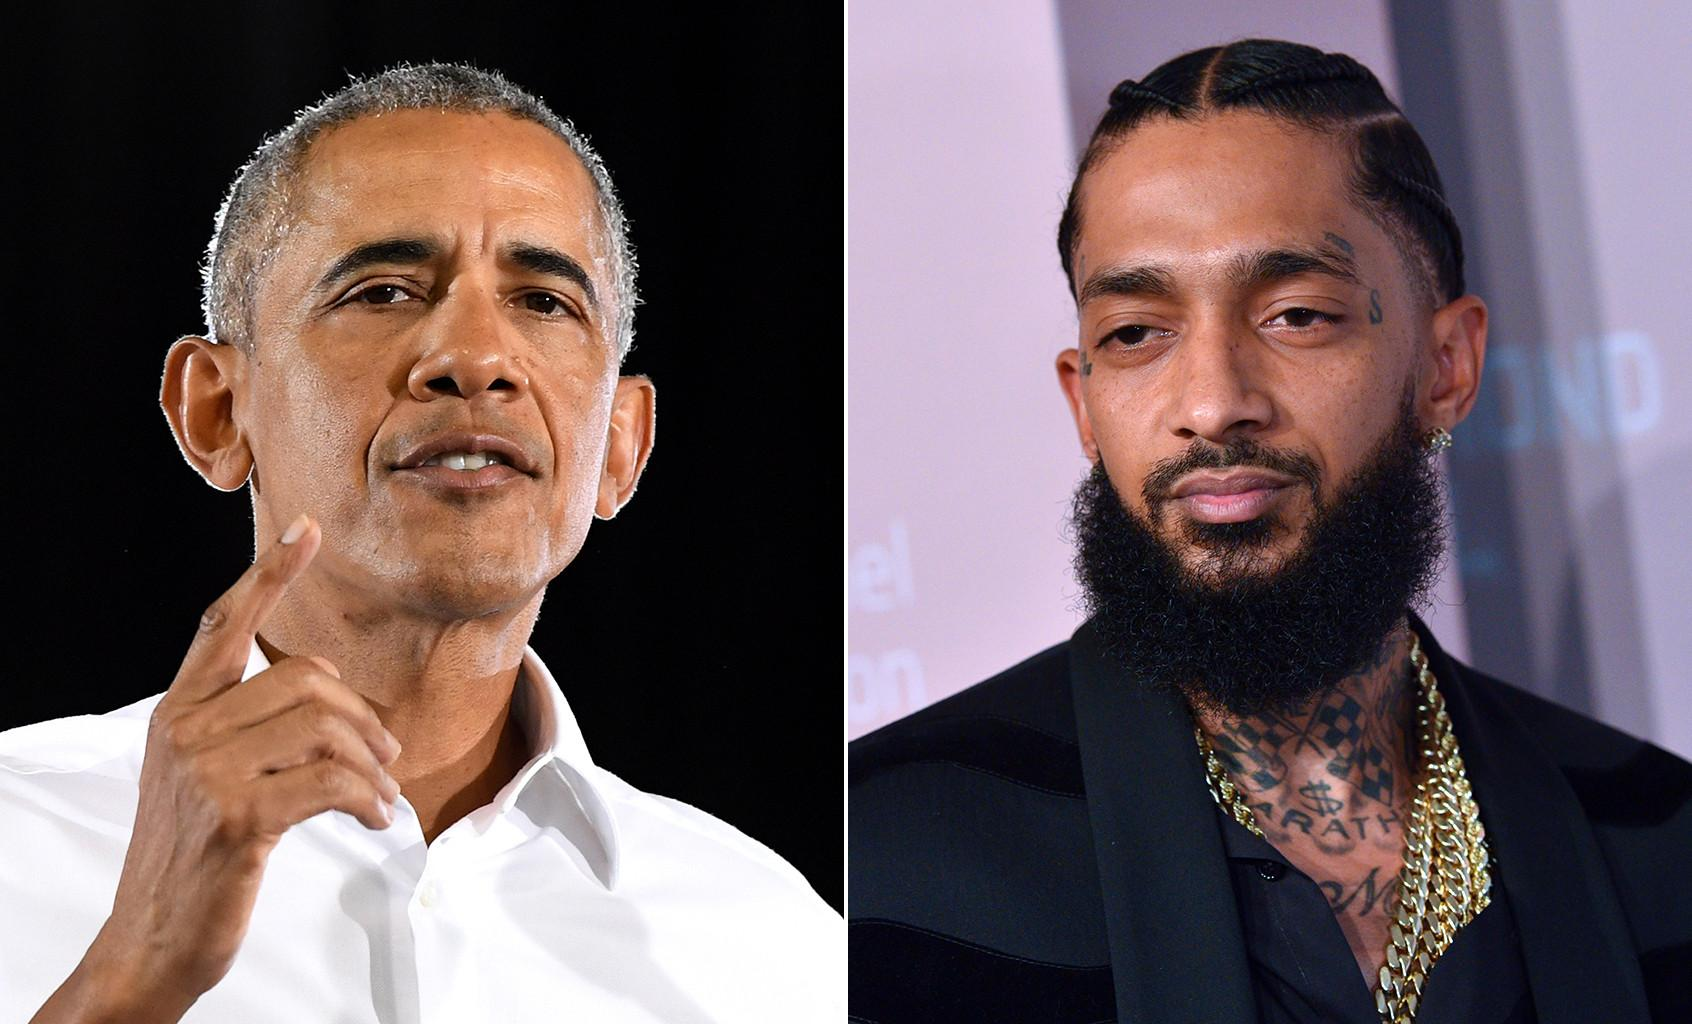 Barack Obama Praises Nipsey Hussle In A Letter - Read It Here And Watch The Video